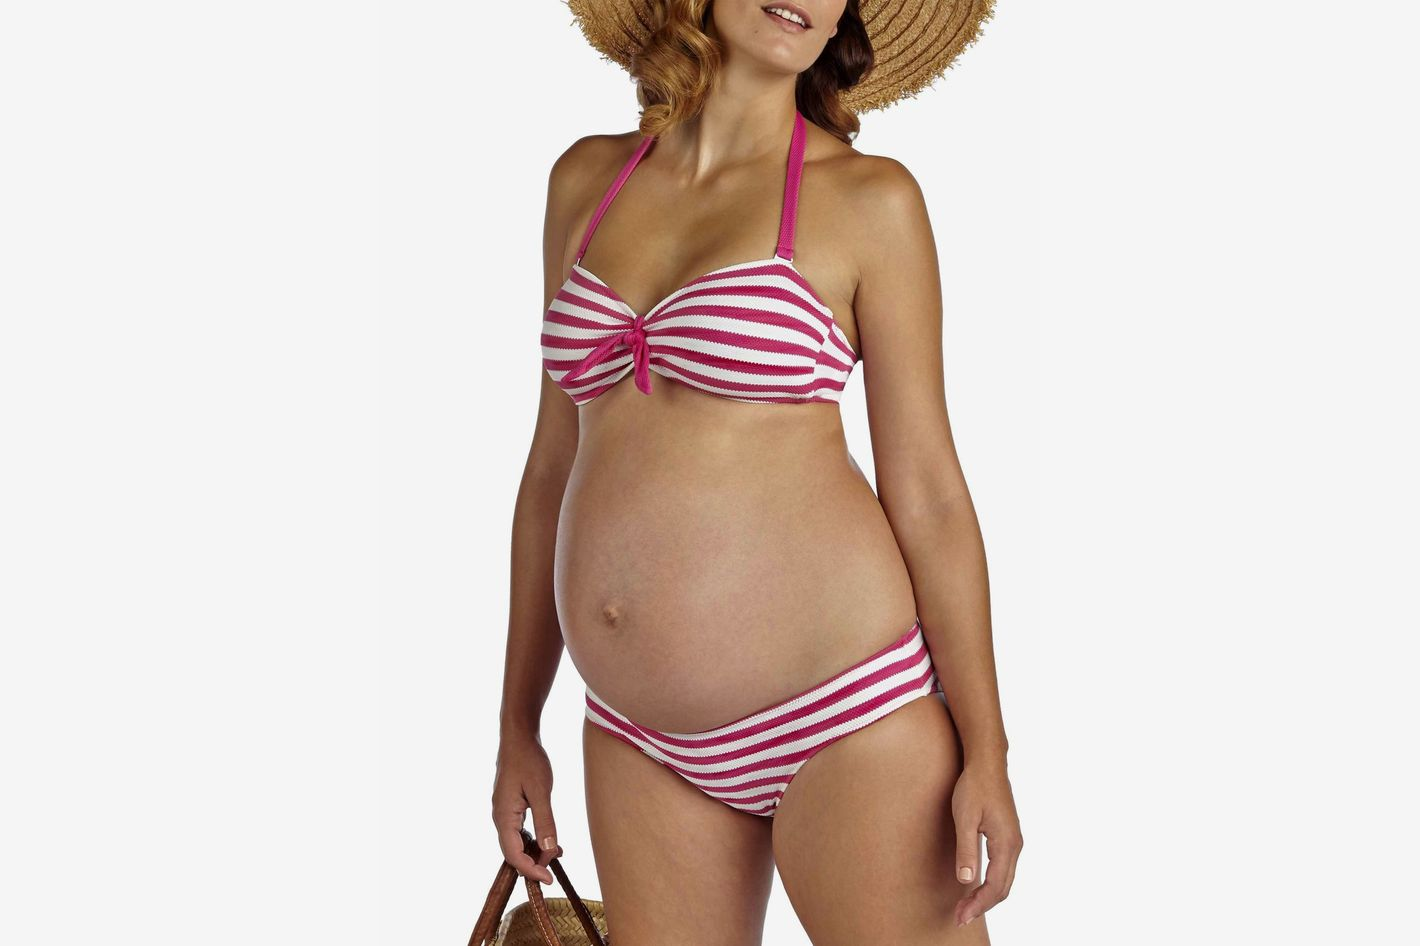 e7c592f3502f 37 Maternity Swimsuits You'll Actually Want to Wear